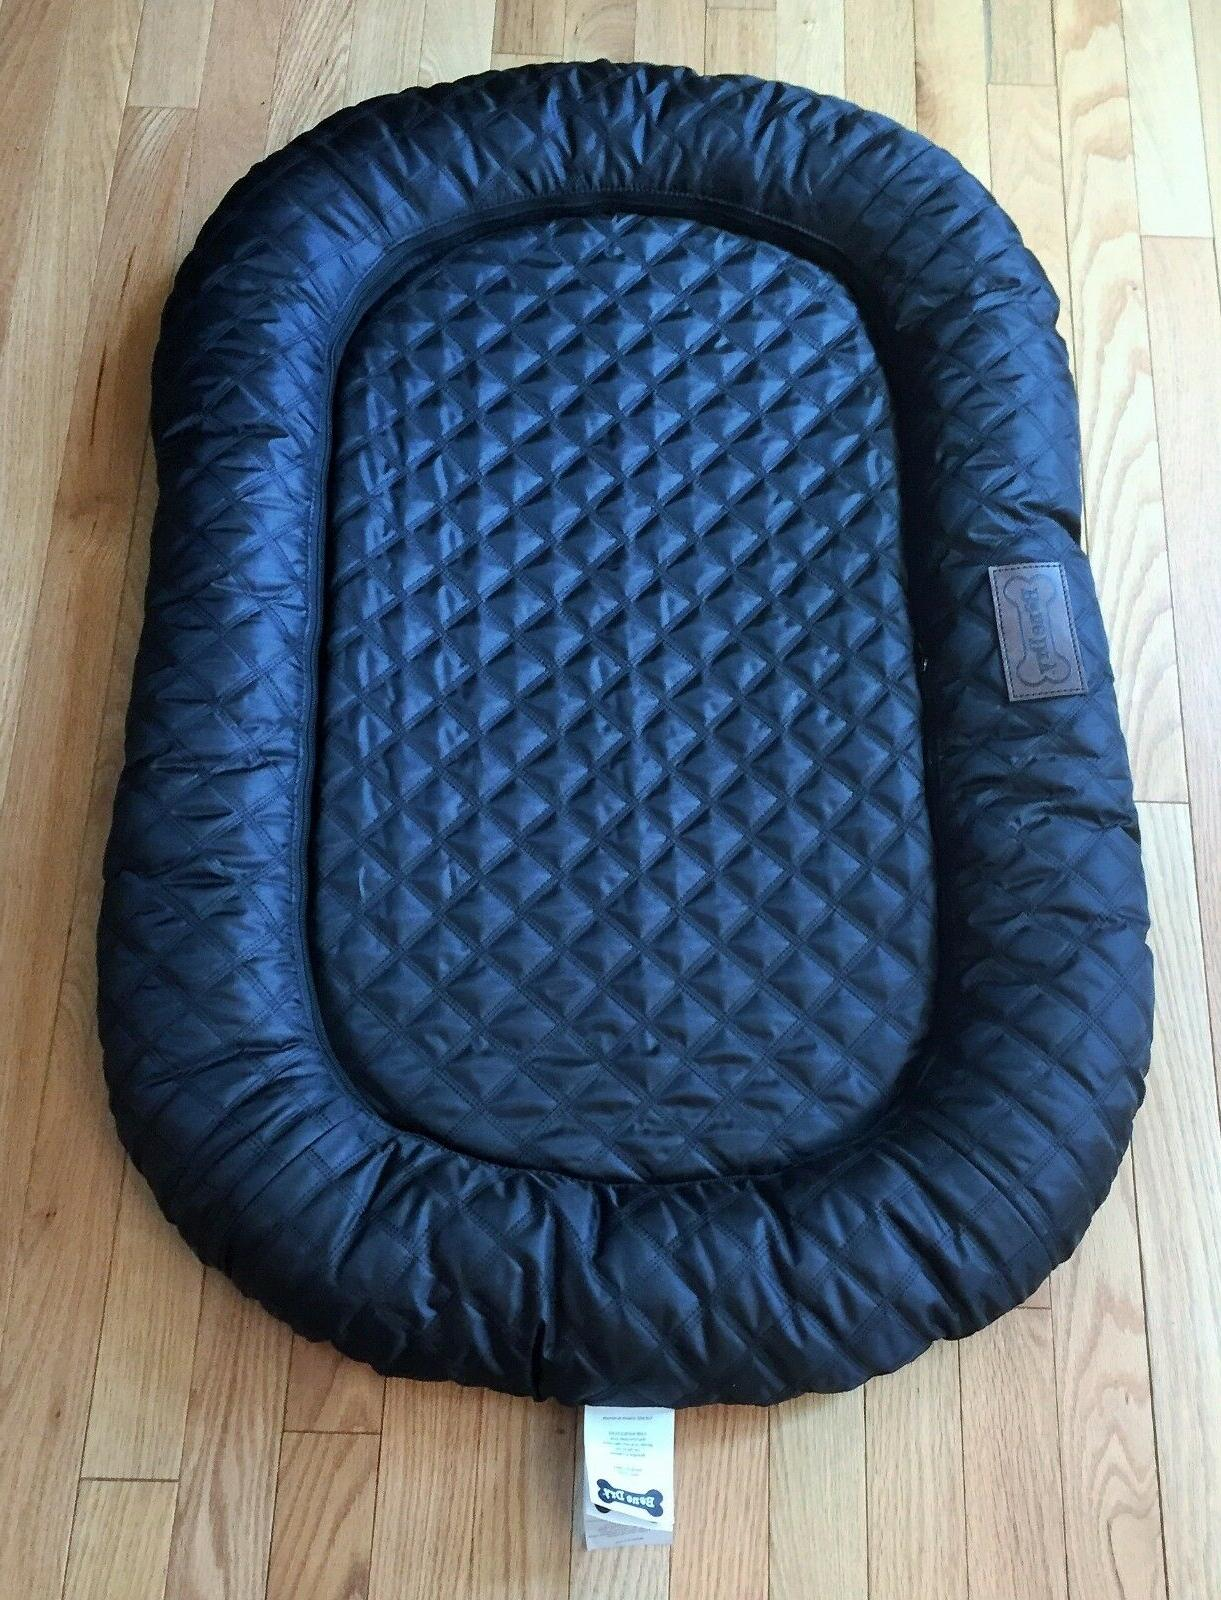 cushioned pet bed for dogs or cats